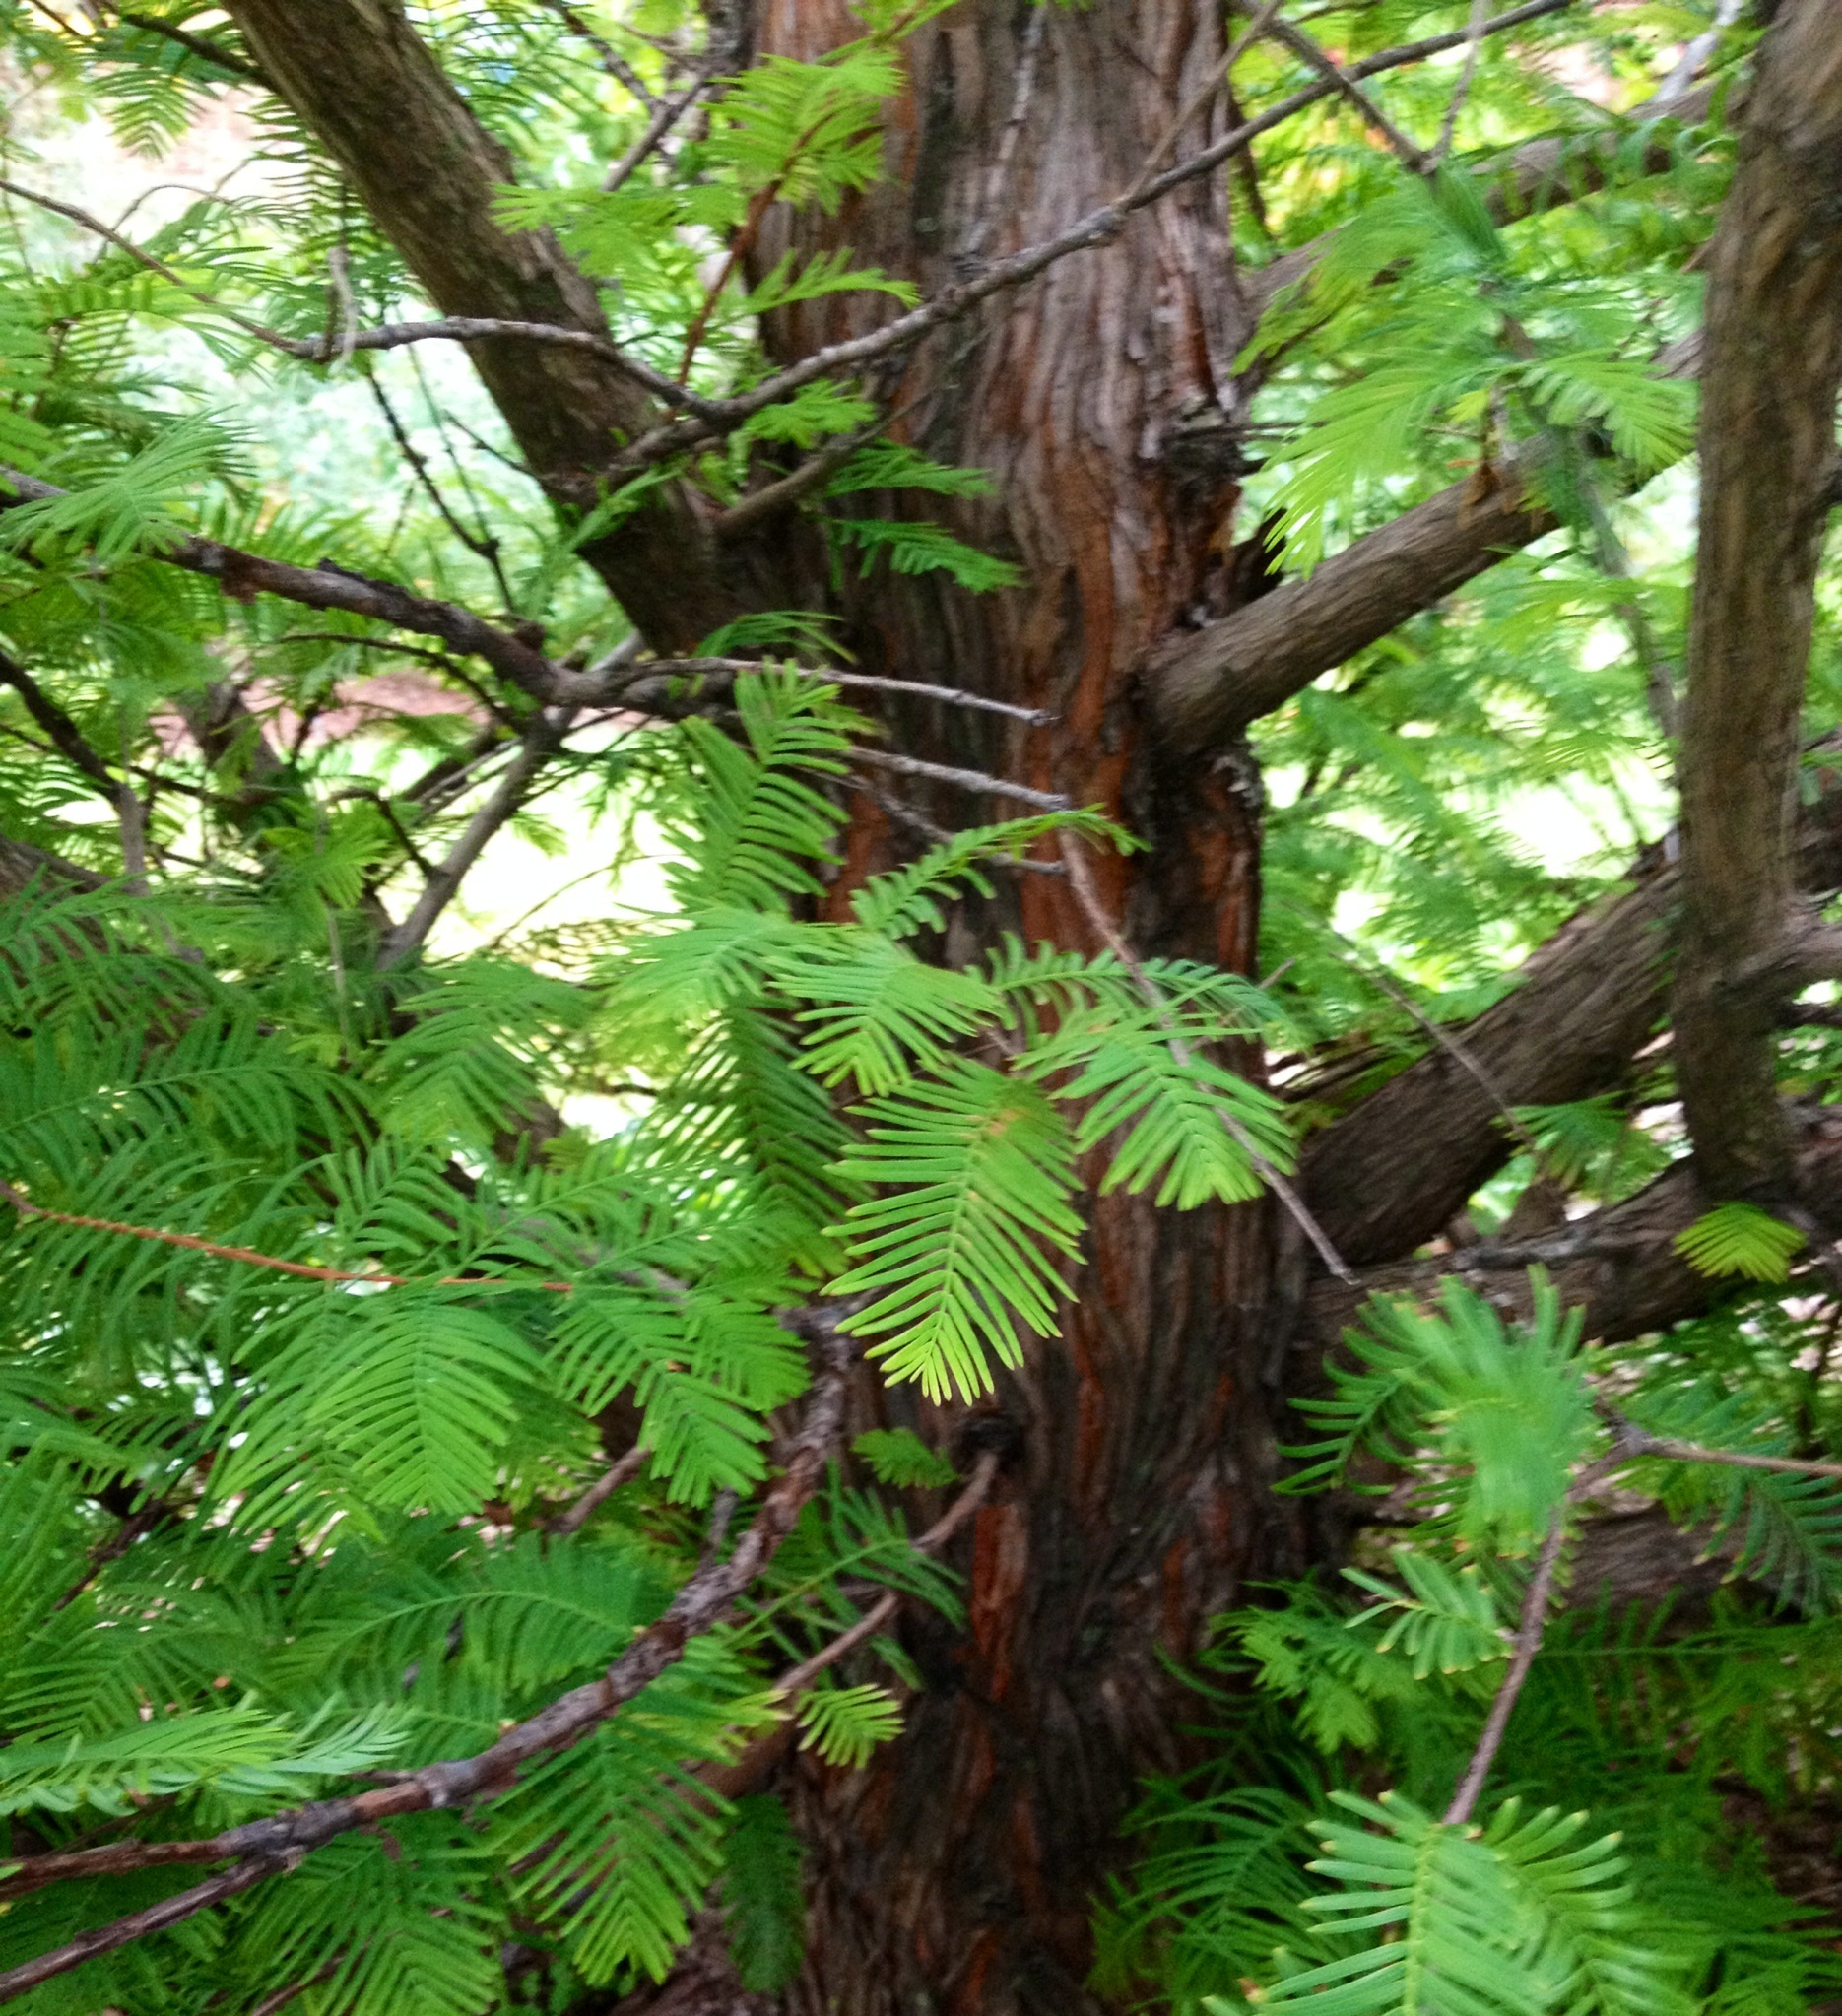 Needles of the Bald Cypress